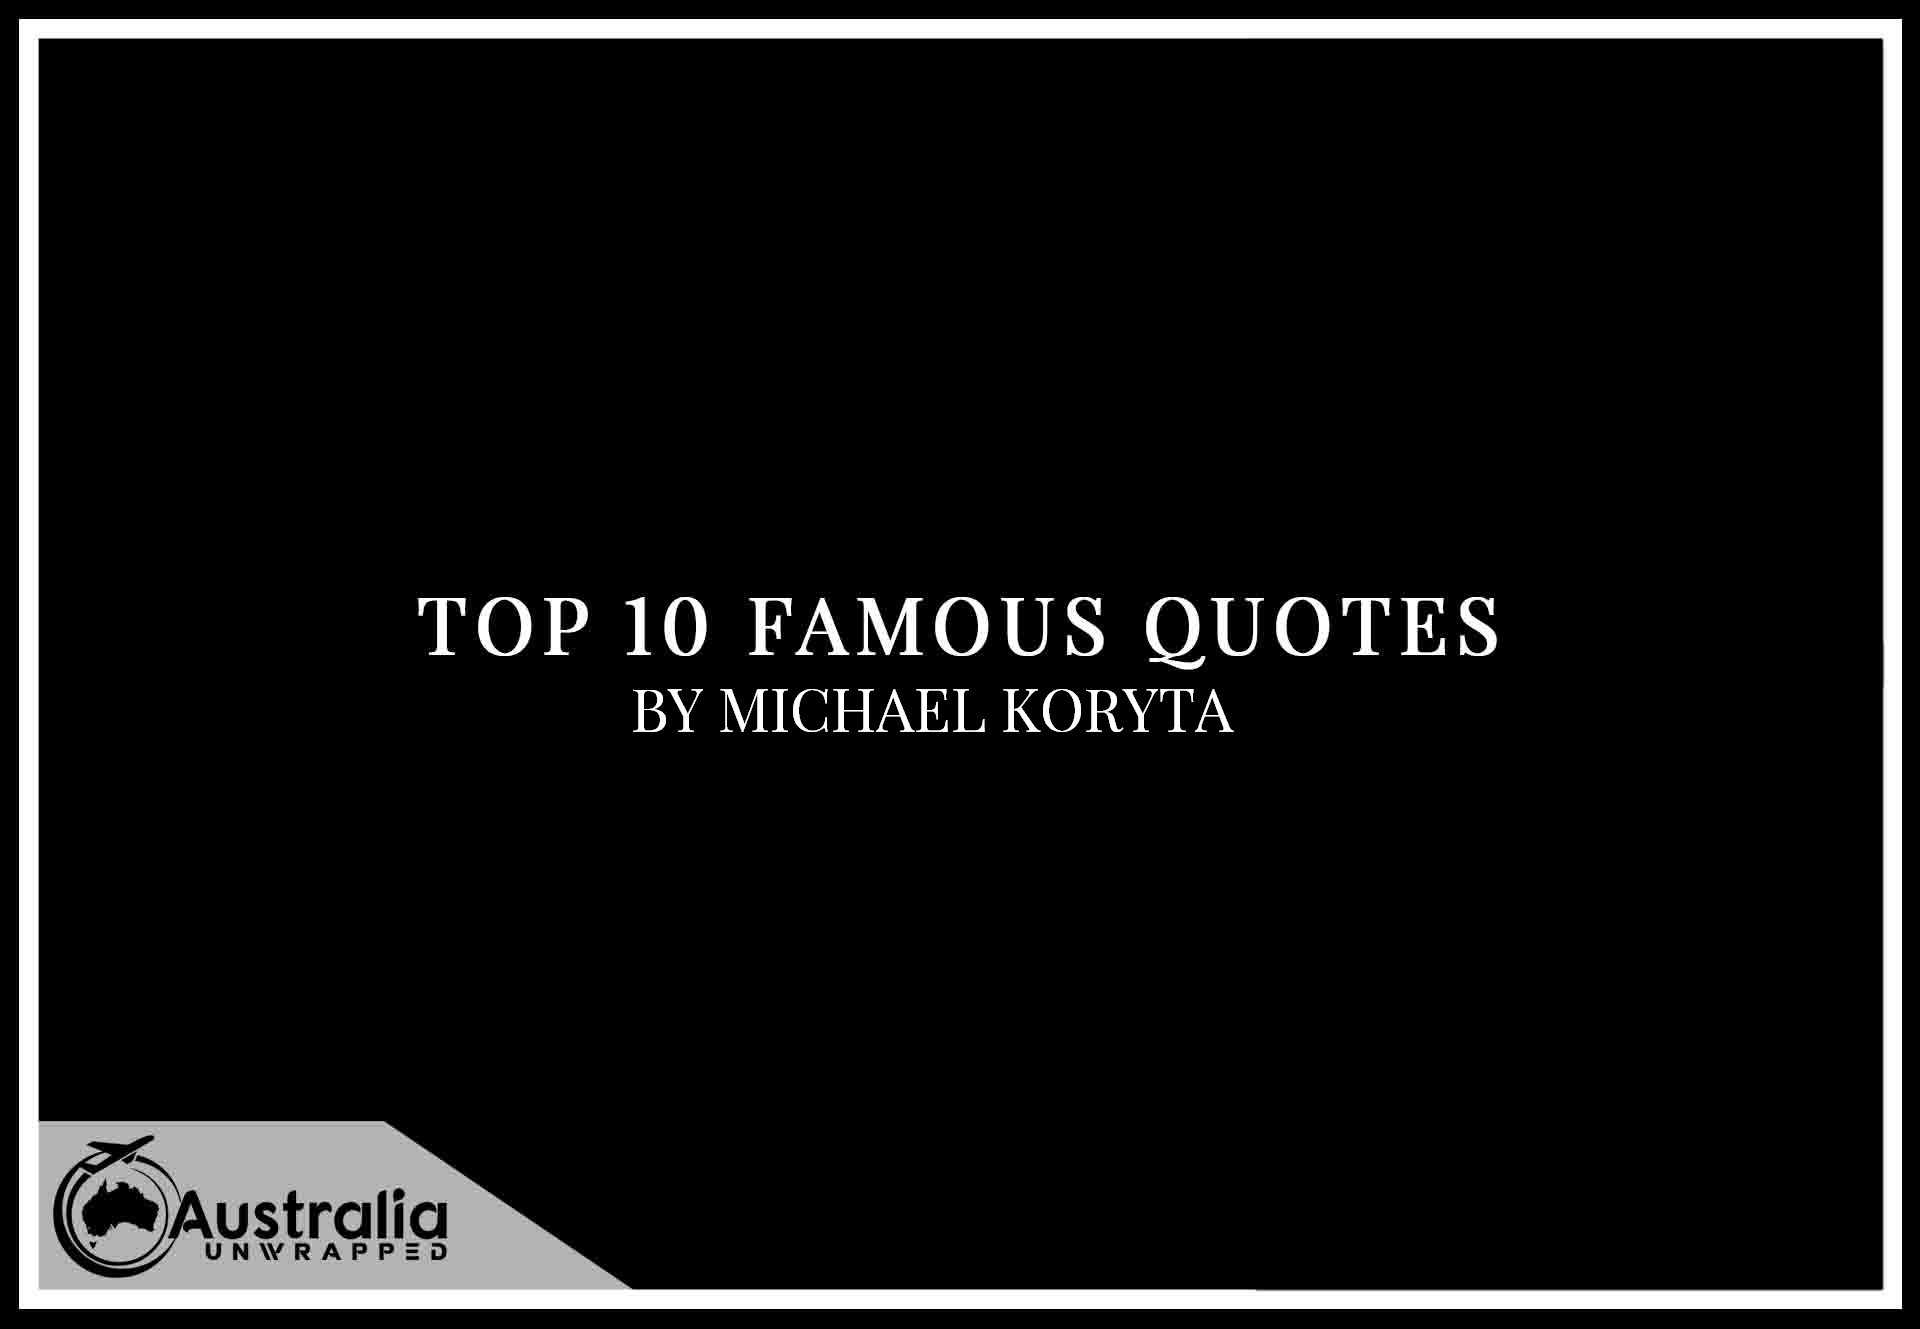 Top 10 Famous Quotes by Author Michael Koryta